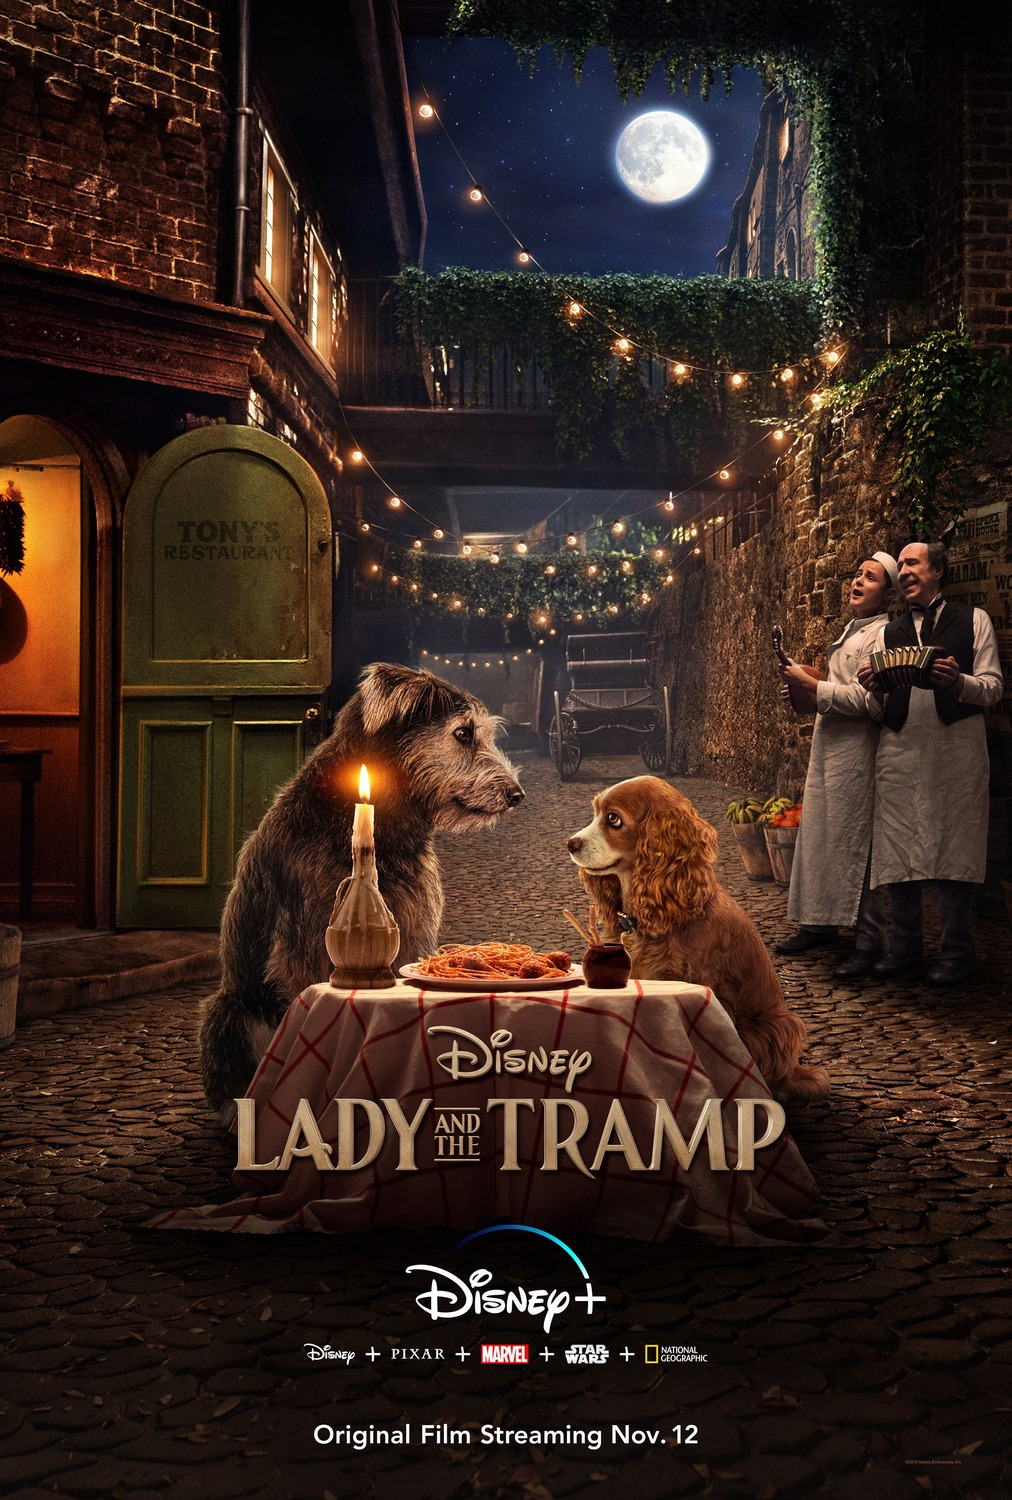 DAMA IR VALKATA (2019) / Lady and the Tramp